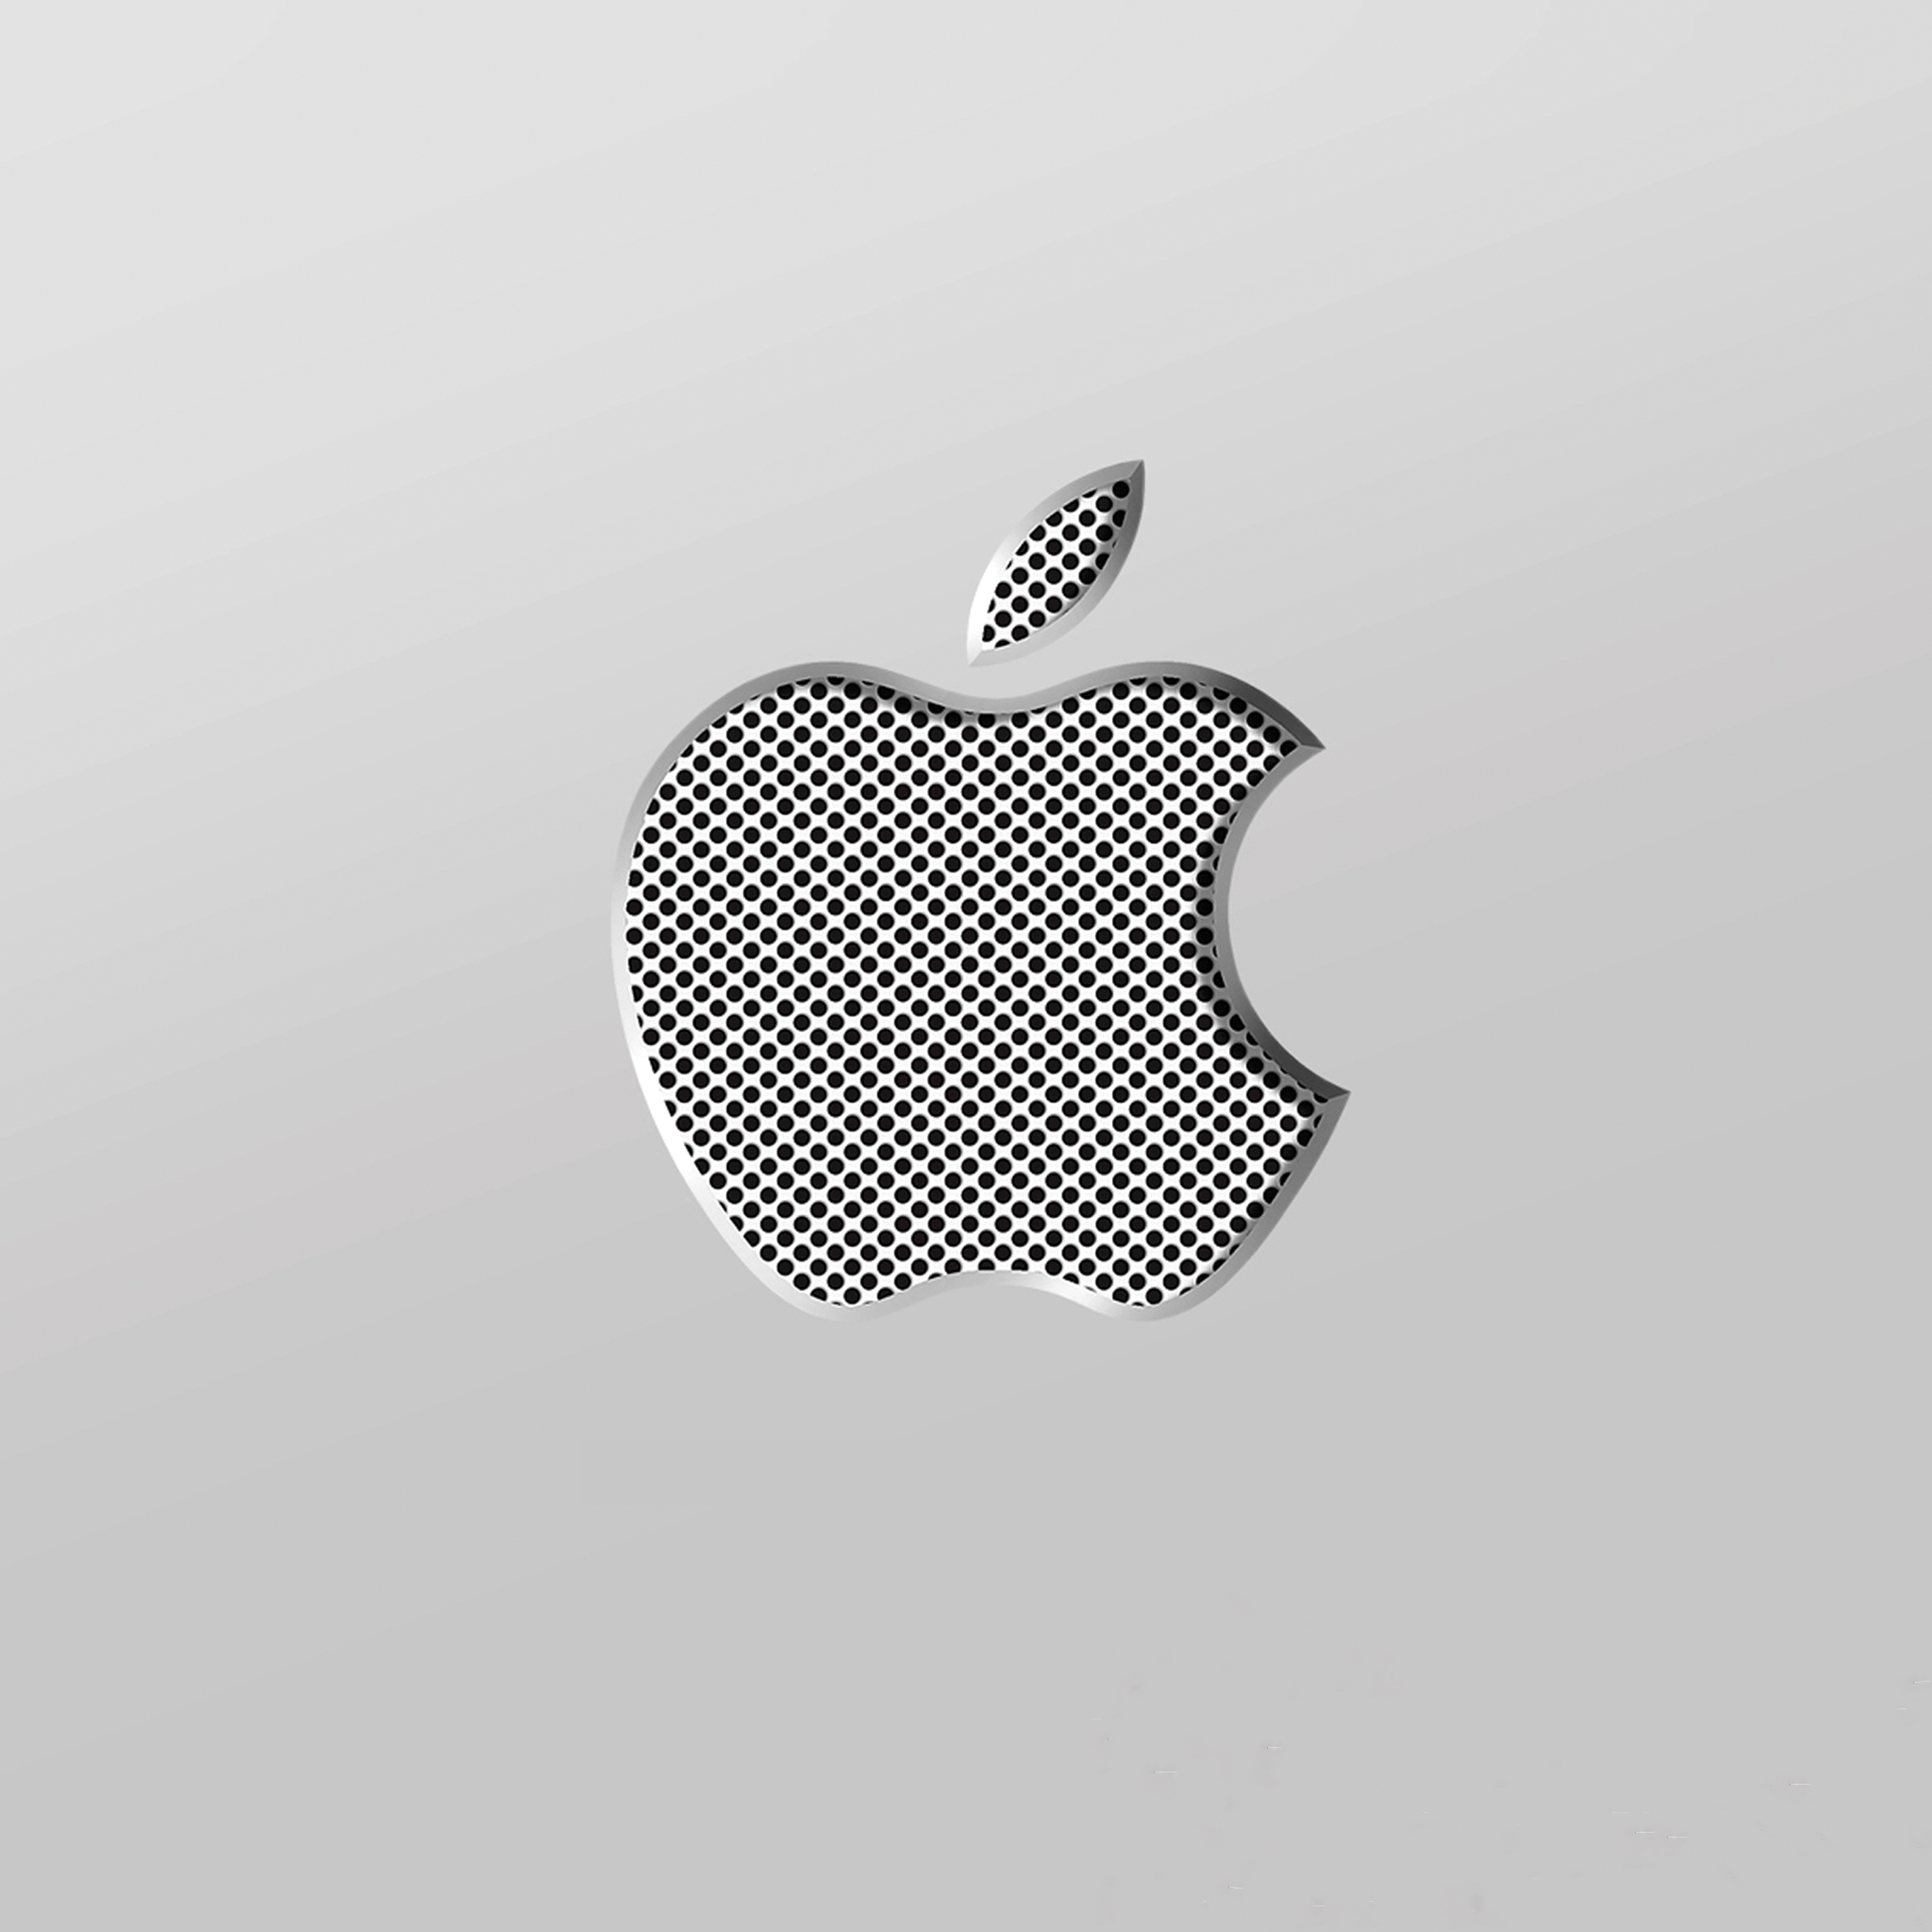 Mac Pro 3Wallpapers iPad Mac Pro   iPad Retina